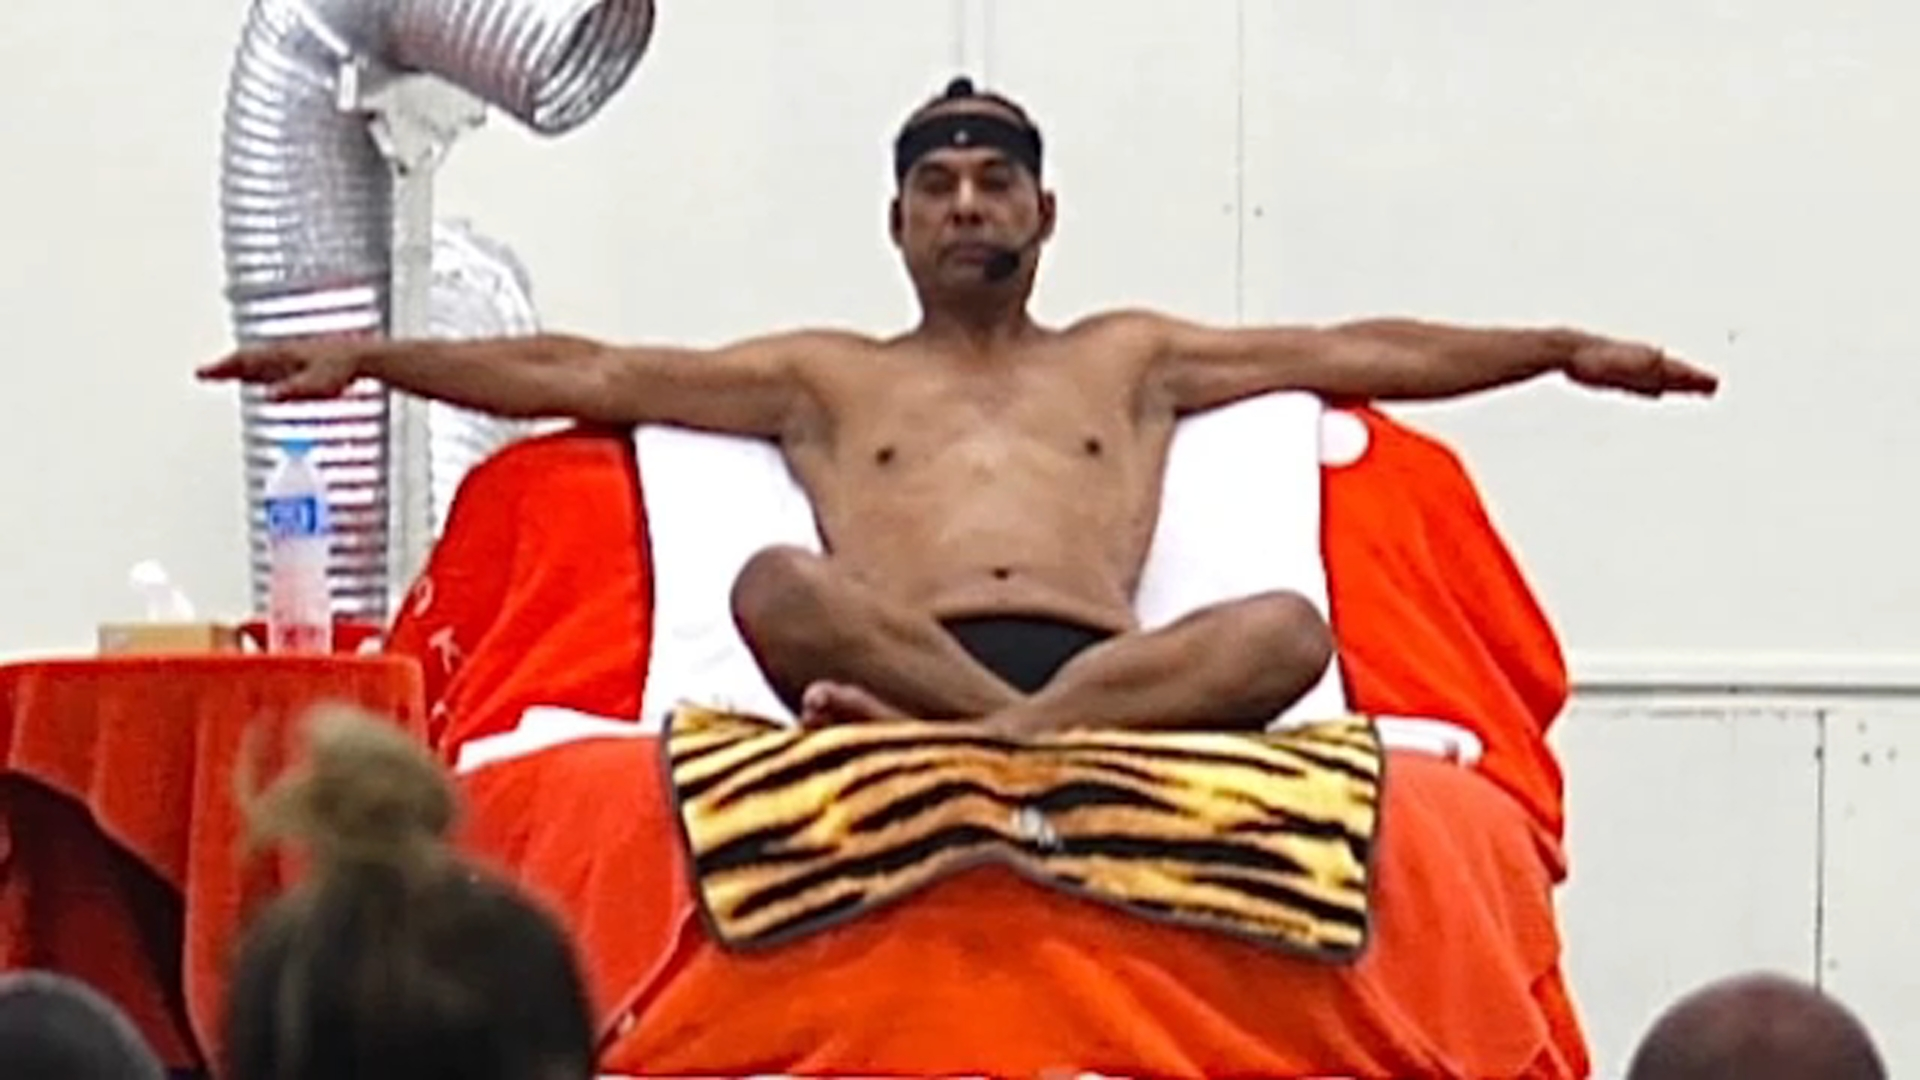 Bikram Yoga Founder Bikram Choudhury Trapped In Mexico After Passport Seized Fleet Of Ca Cars To Be Auctioned Abc7 Los Angeles